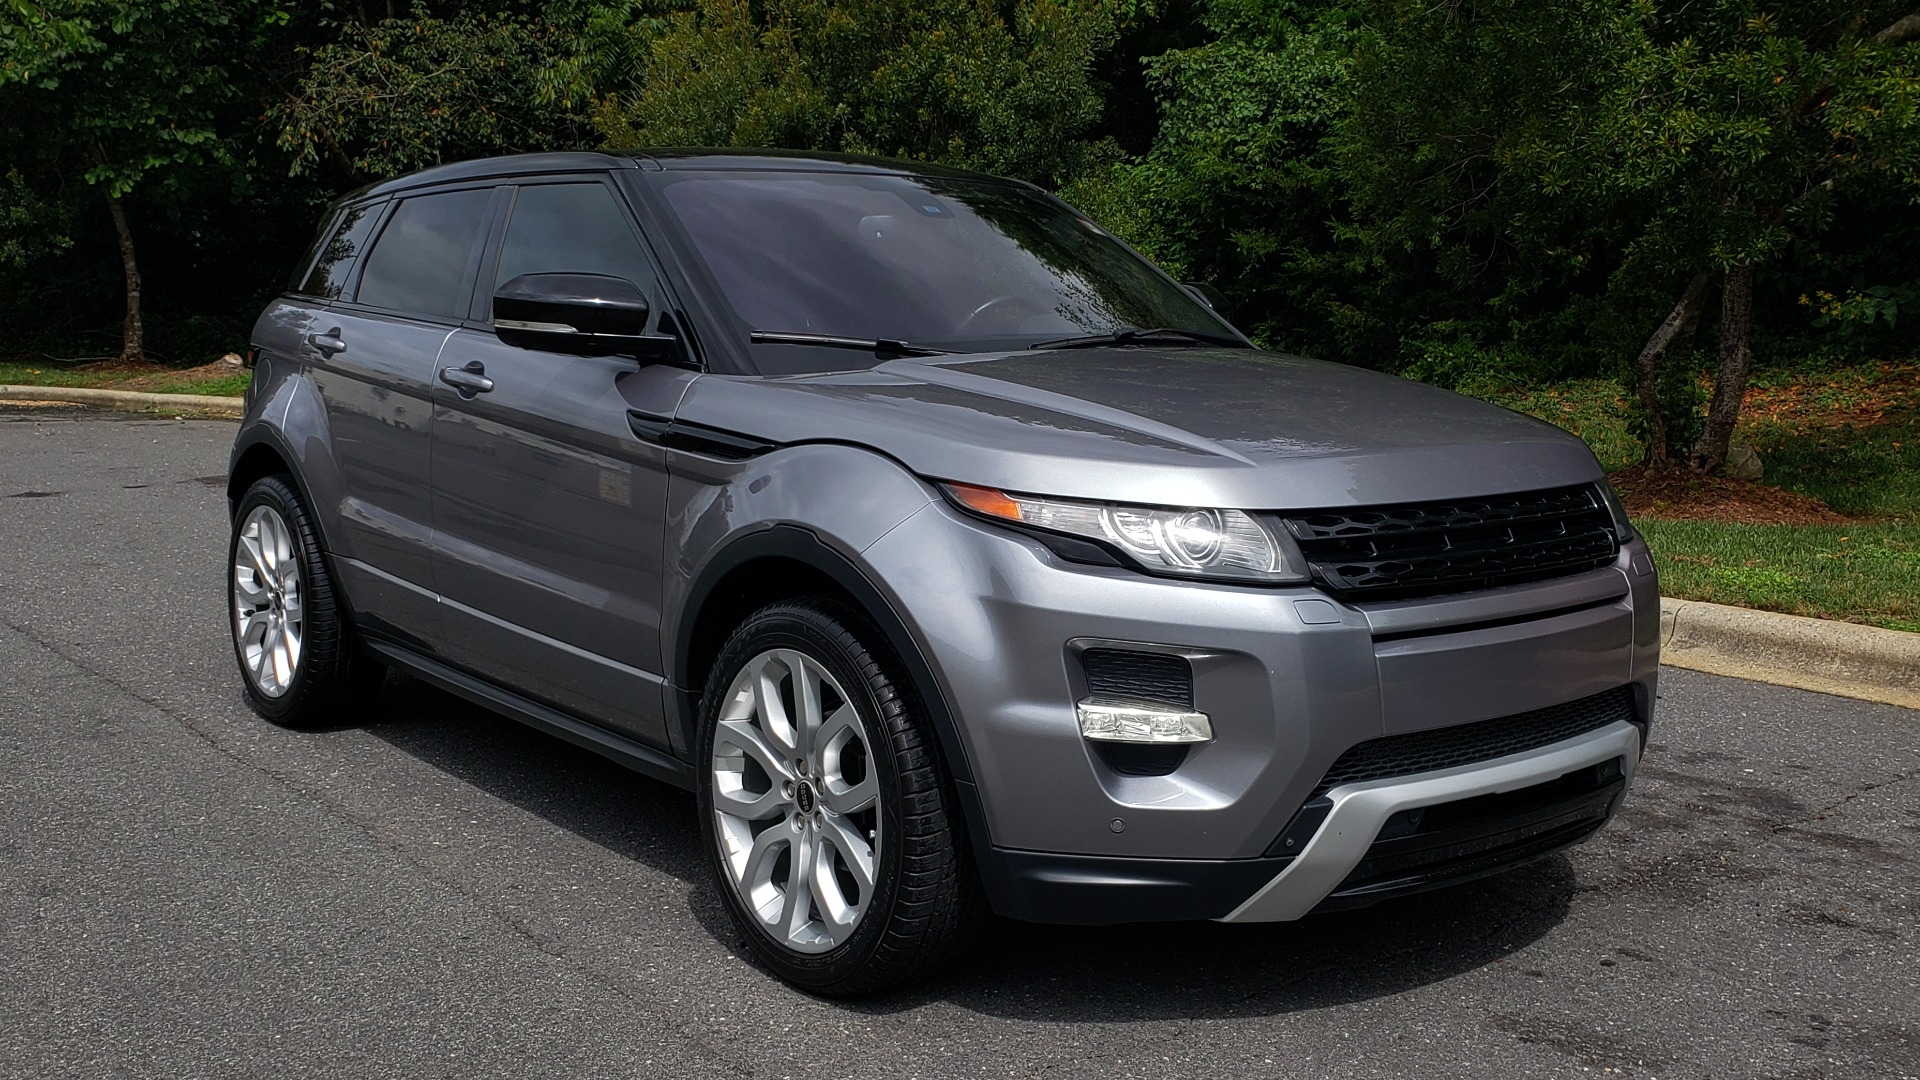 Used 2013 Land Rover RANGE ROVER EVOQUE DYNAMIC PREMIUM / NAV / PANO-ROOF / BLIND SPOT / REARVIEW for sale Sold at Formula Imports in Charlotte NC 28227 6